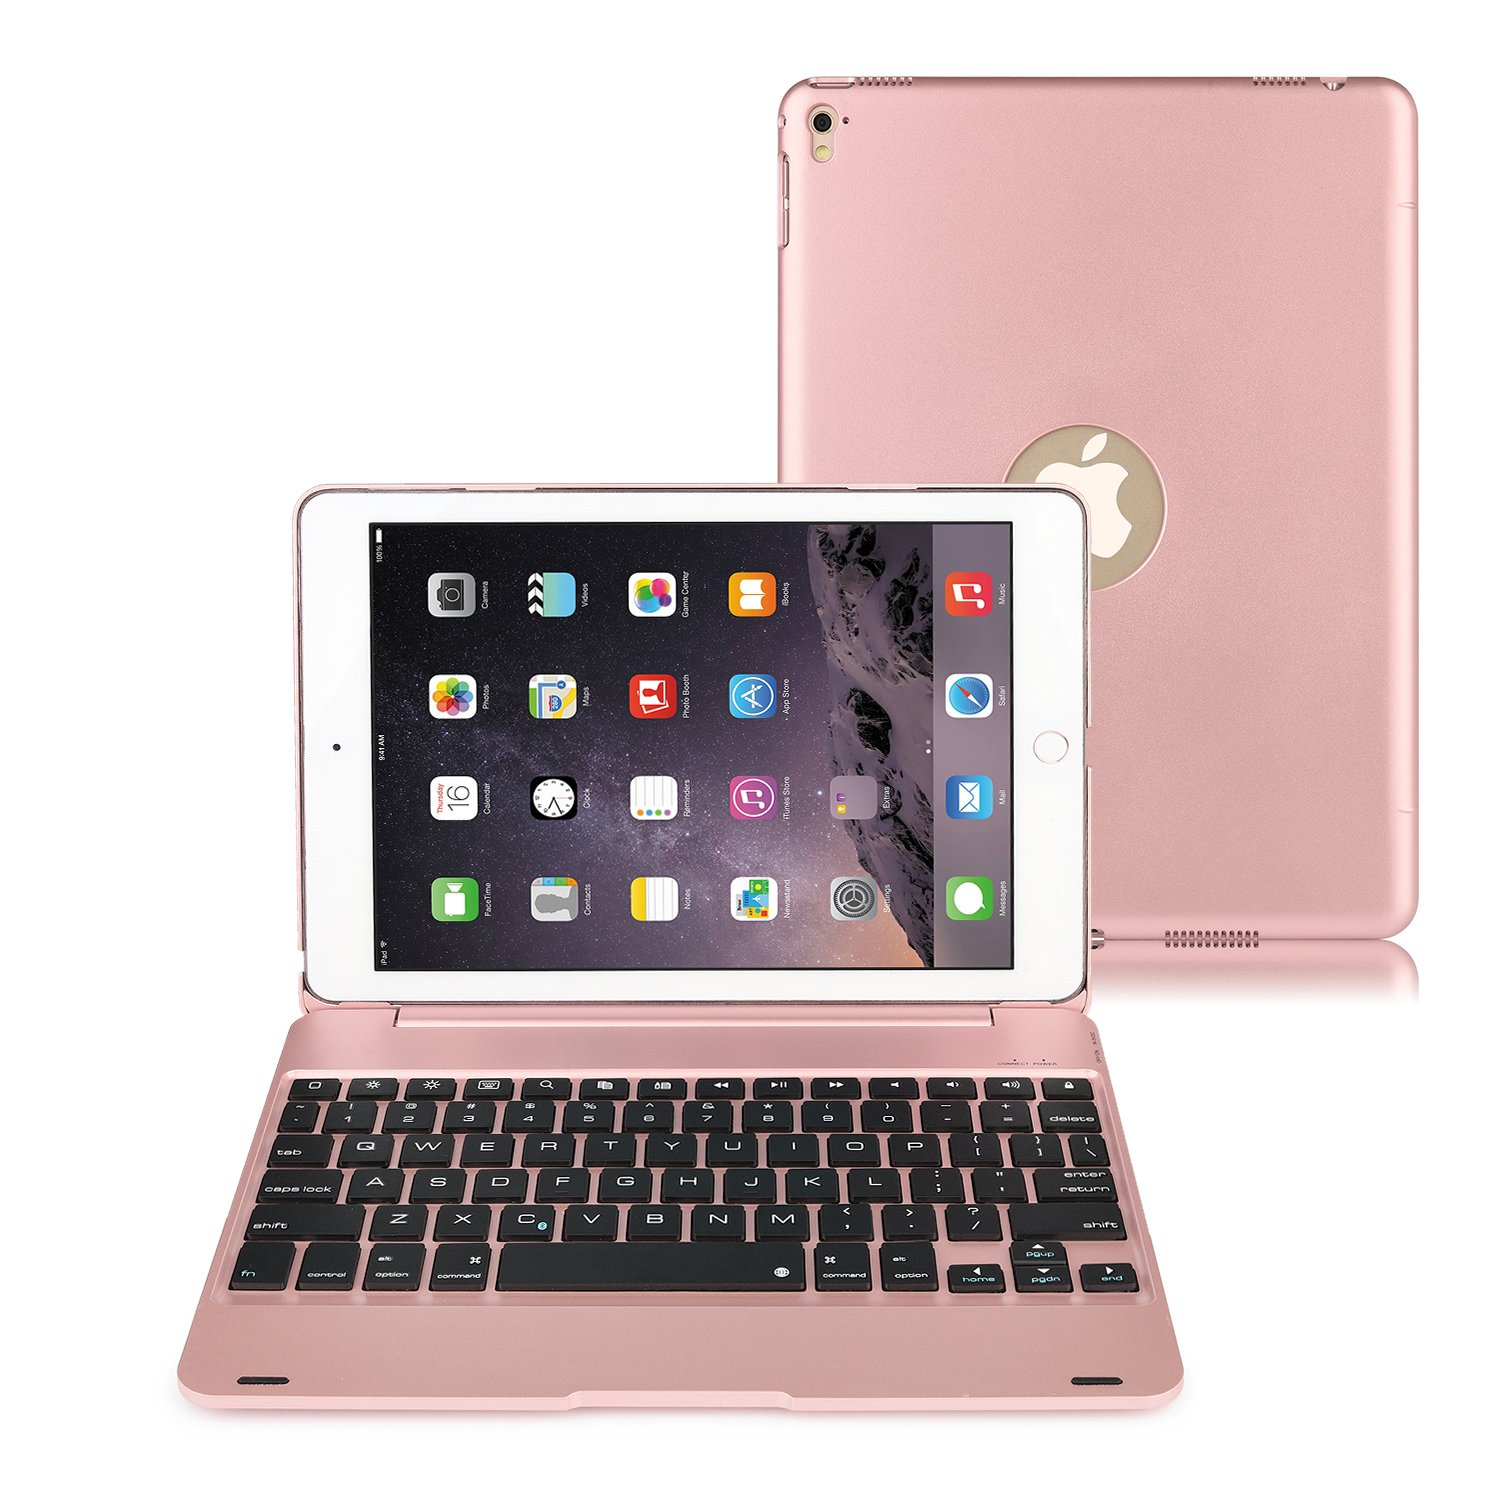 iPad Pro 9.7 Keyboard Case, kiwitatá Wireless Bluetooth Keyboard Portable Laptop Macbook Hard Shell Protective Case Cover for Apple iPad Air 2 / Pro 9.7 (NOT for 2017 New iPad 9.7) kiwitata A001-045